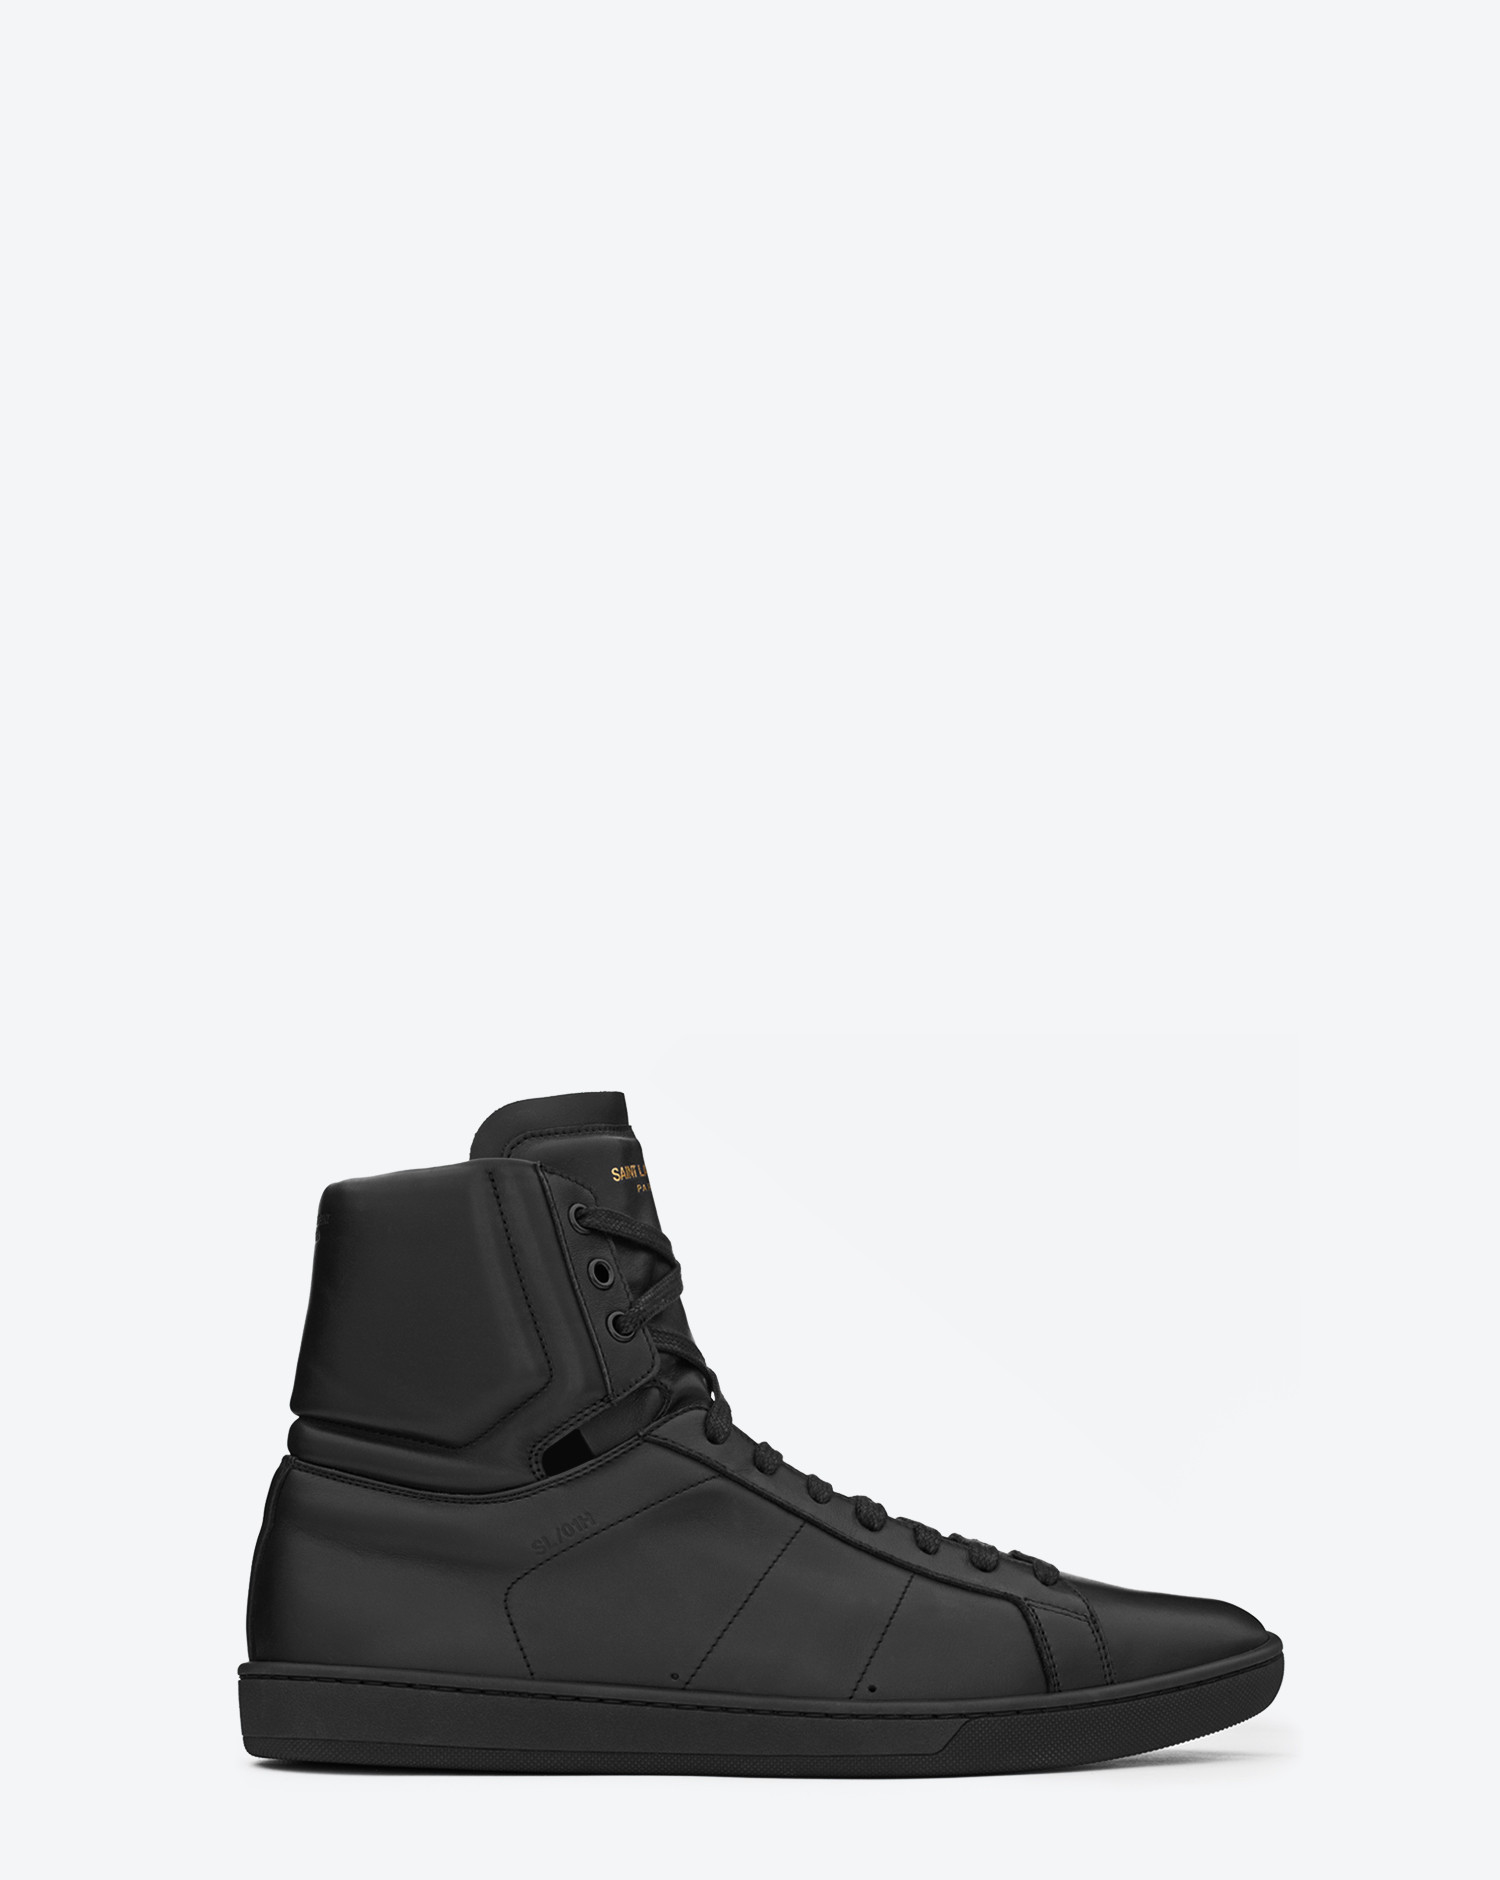 saint laurent signature court classic sl 01h high top sneaker in black leather in black for men. Black Bedroom Furniture Sets. Home Design Ideas